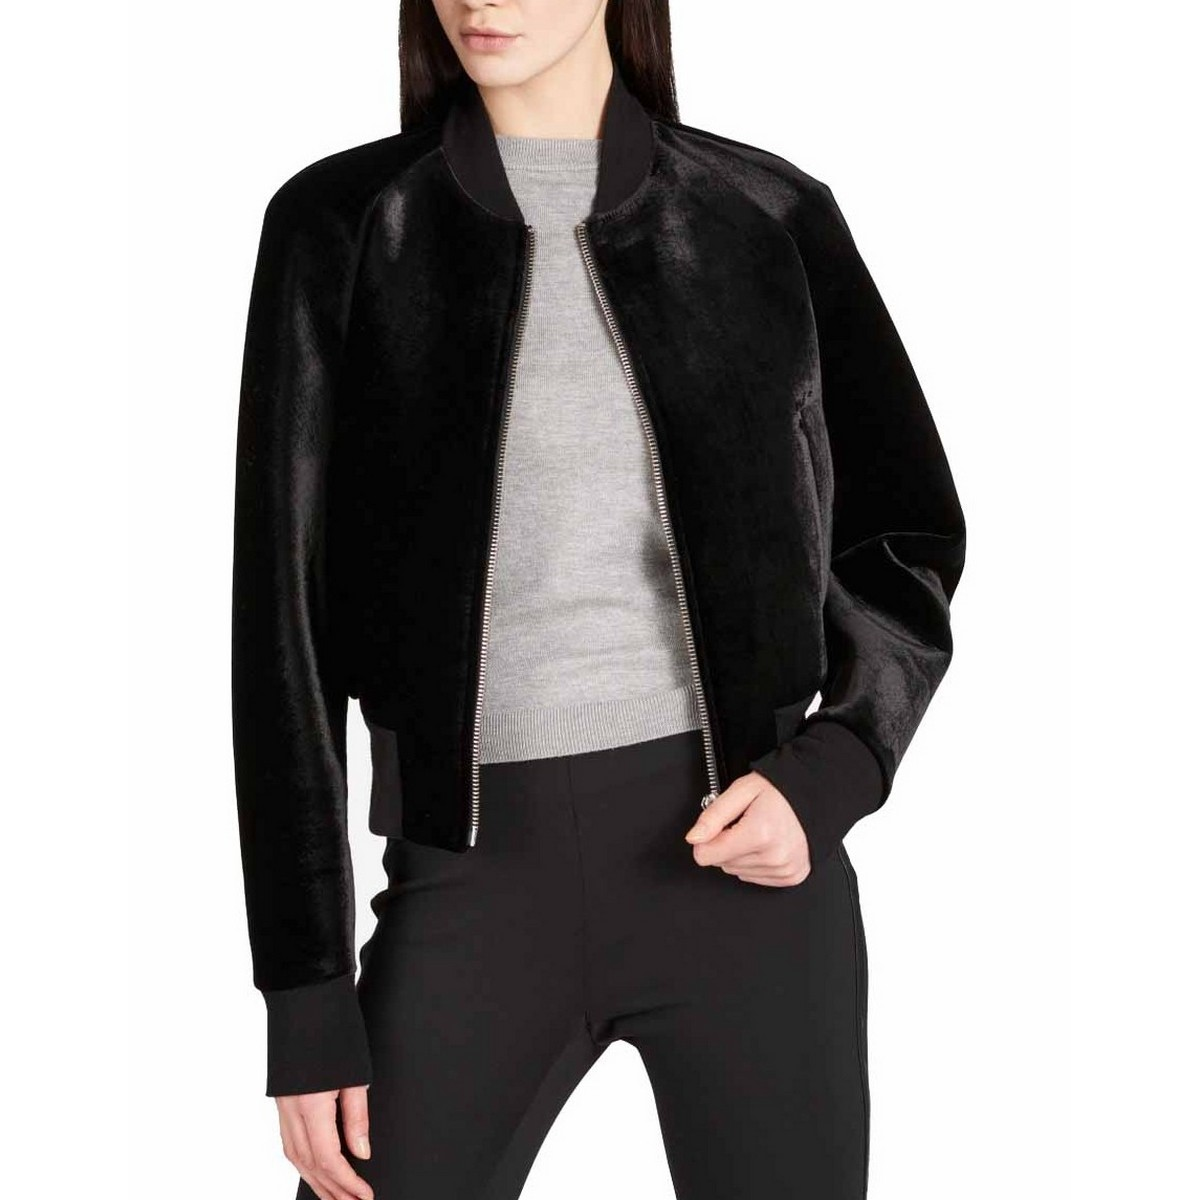 cc1bbb15f69ed Details about DKNY NEW Women's Black Zip Front Velour Bomber Jacket Top M  TEDO